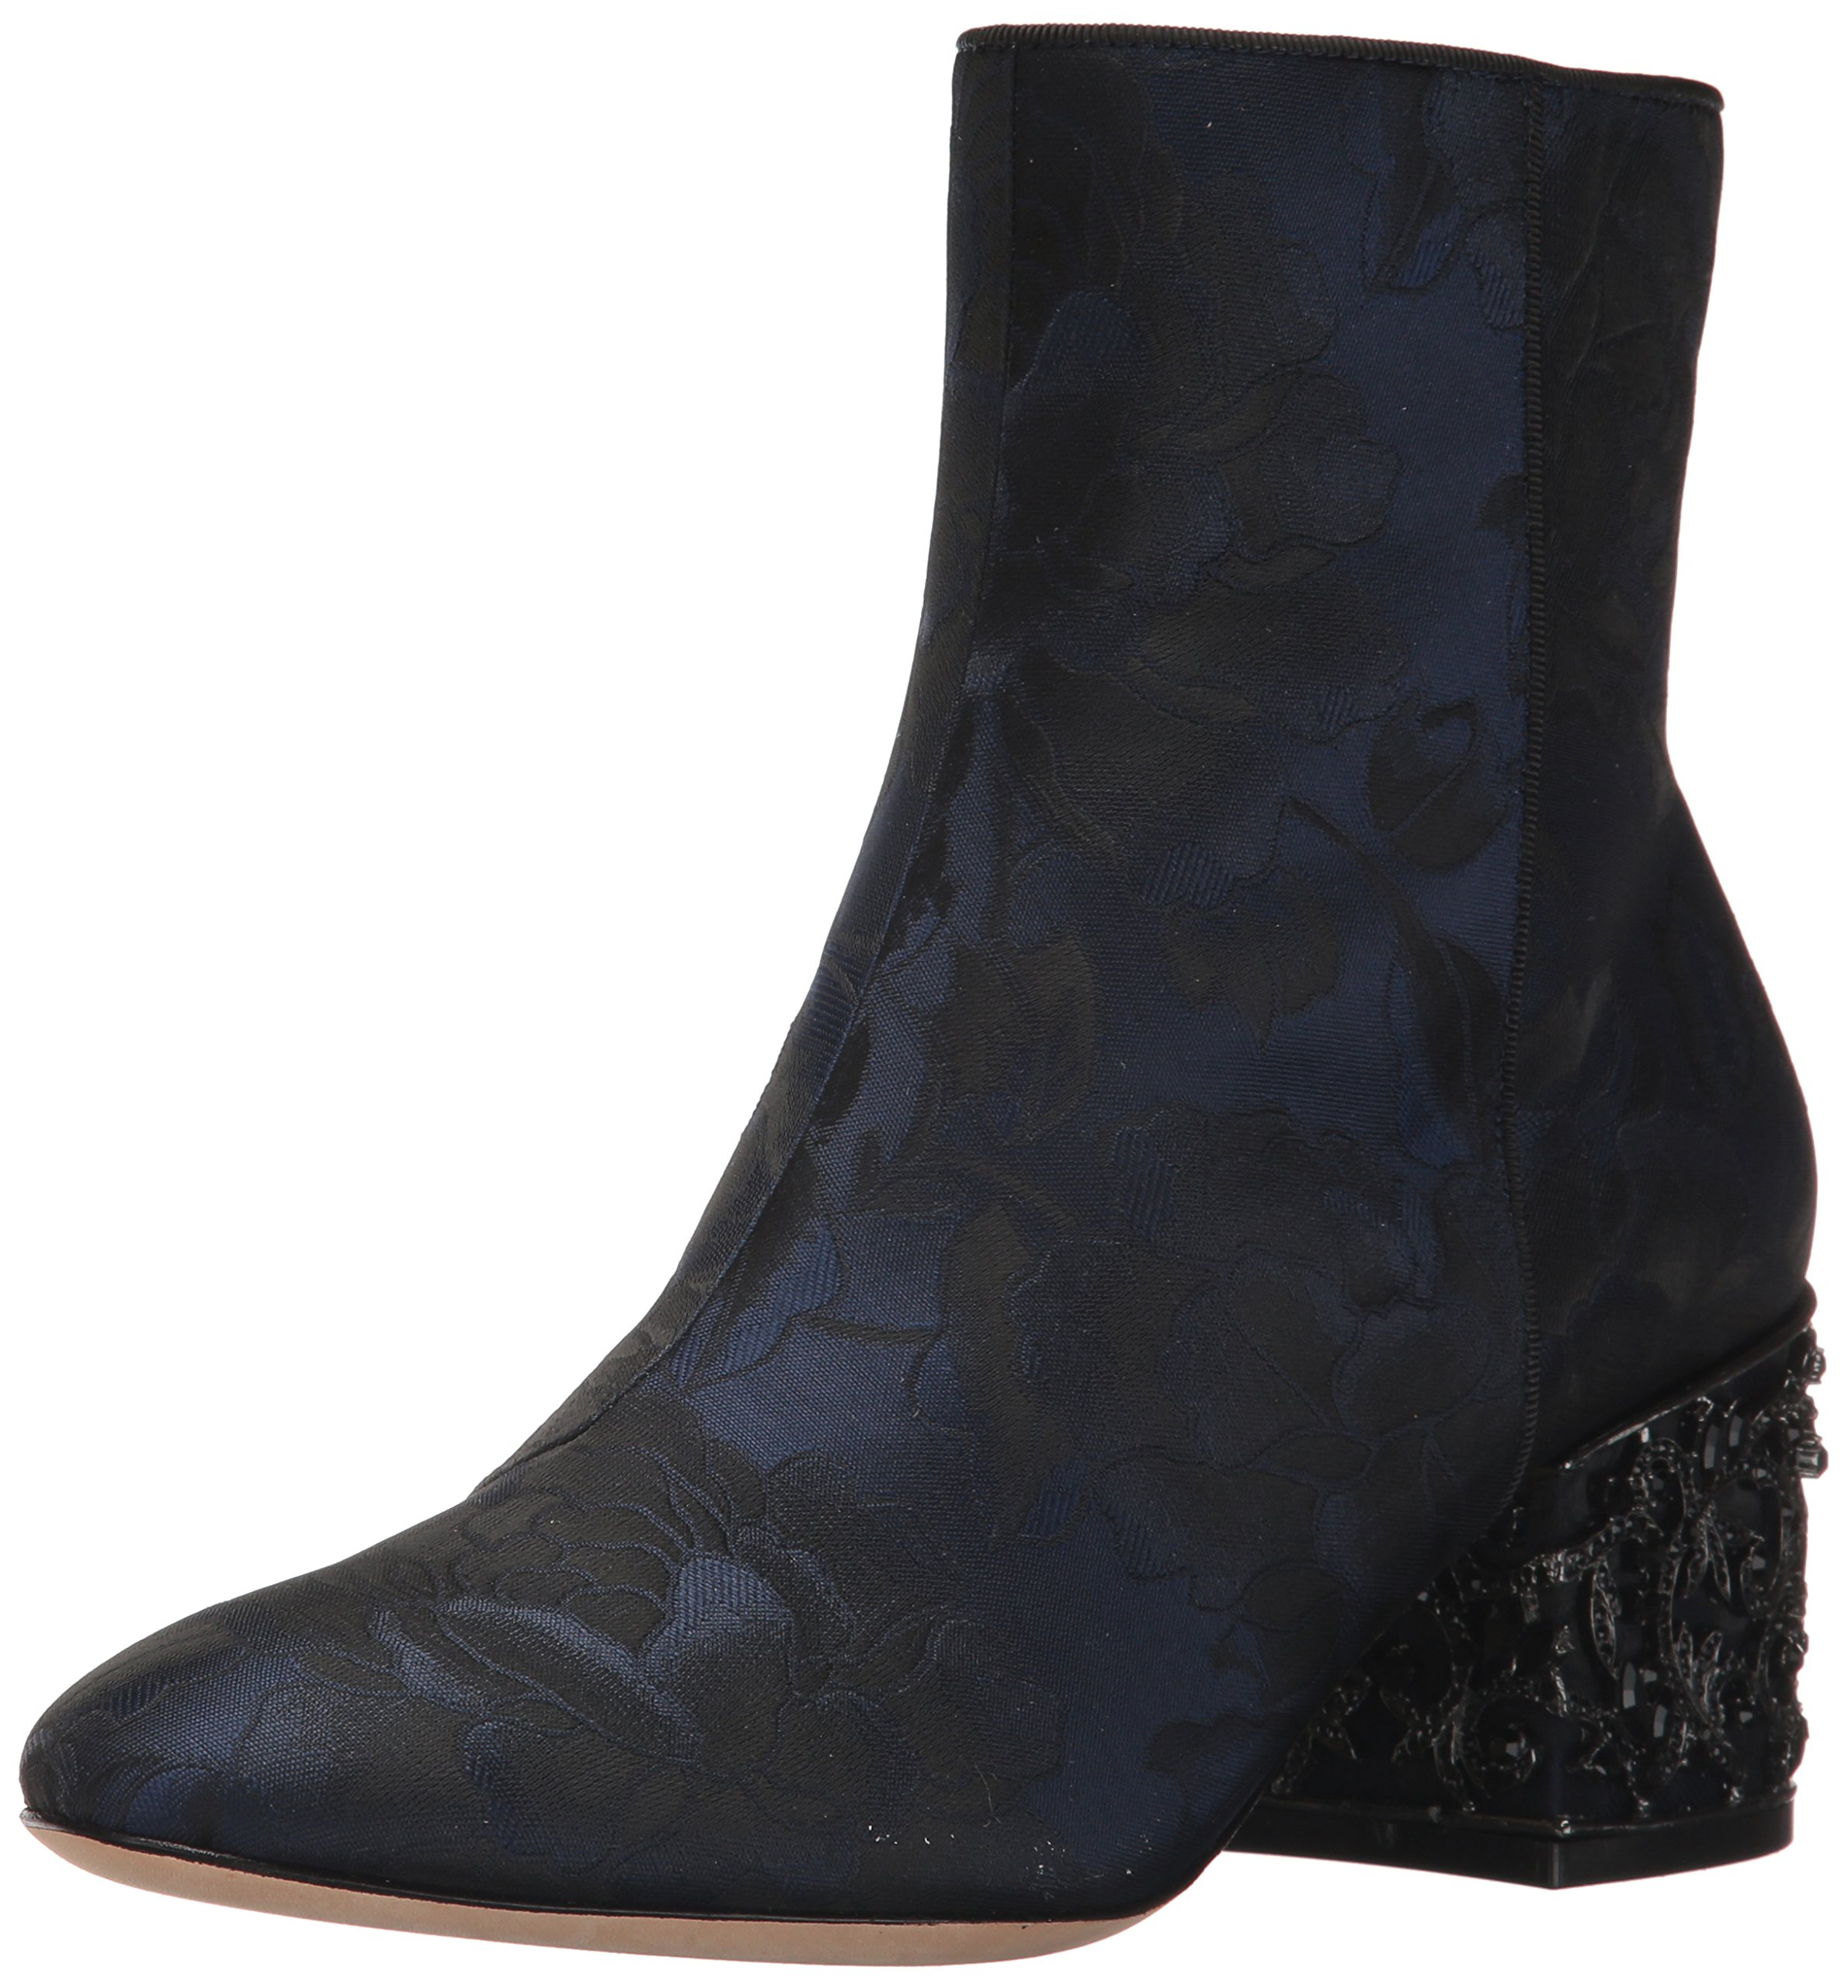 Badgley Mischka Women's Martha Ankle Boot, Midnight Brocade, 7.5 M US